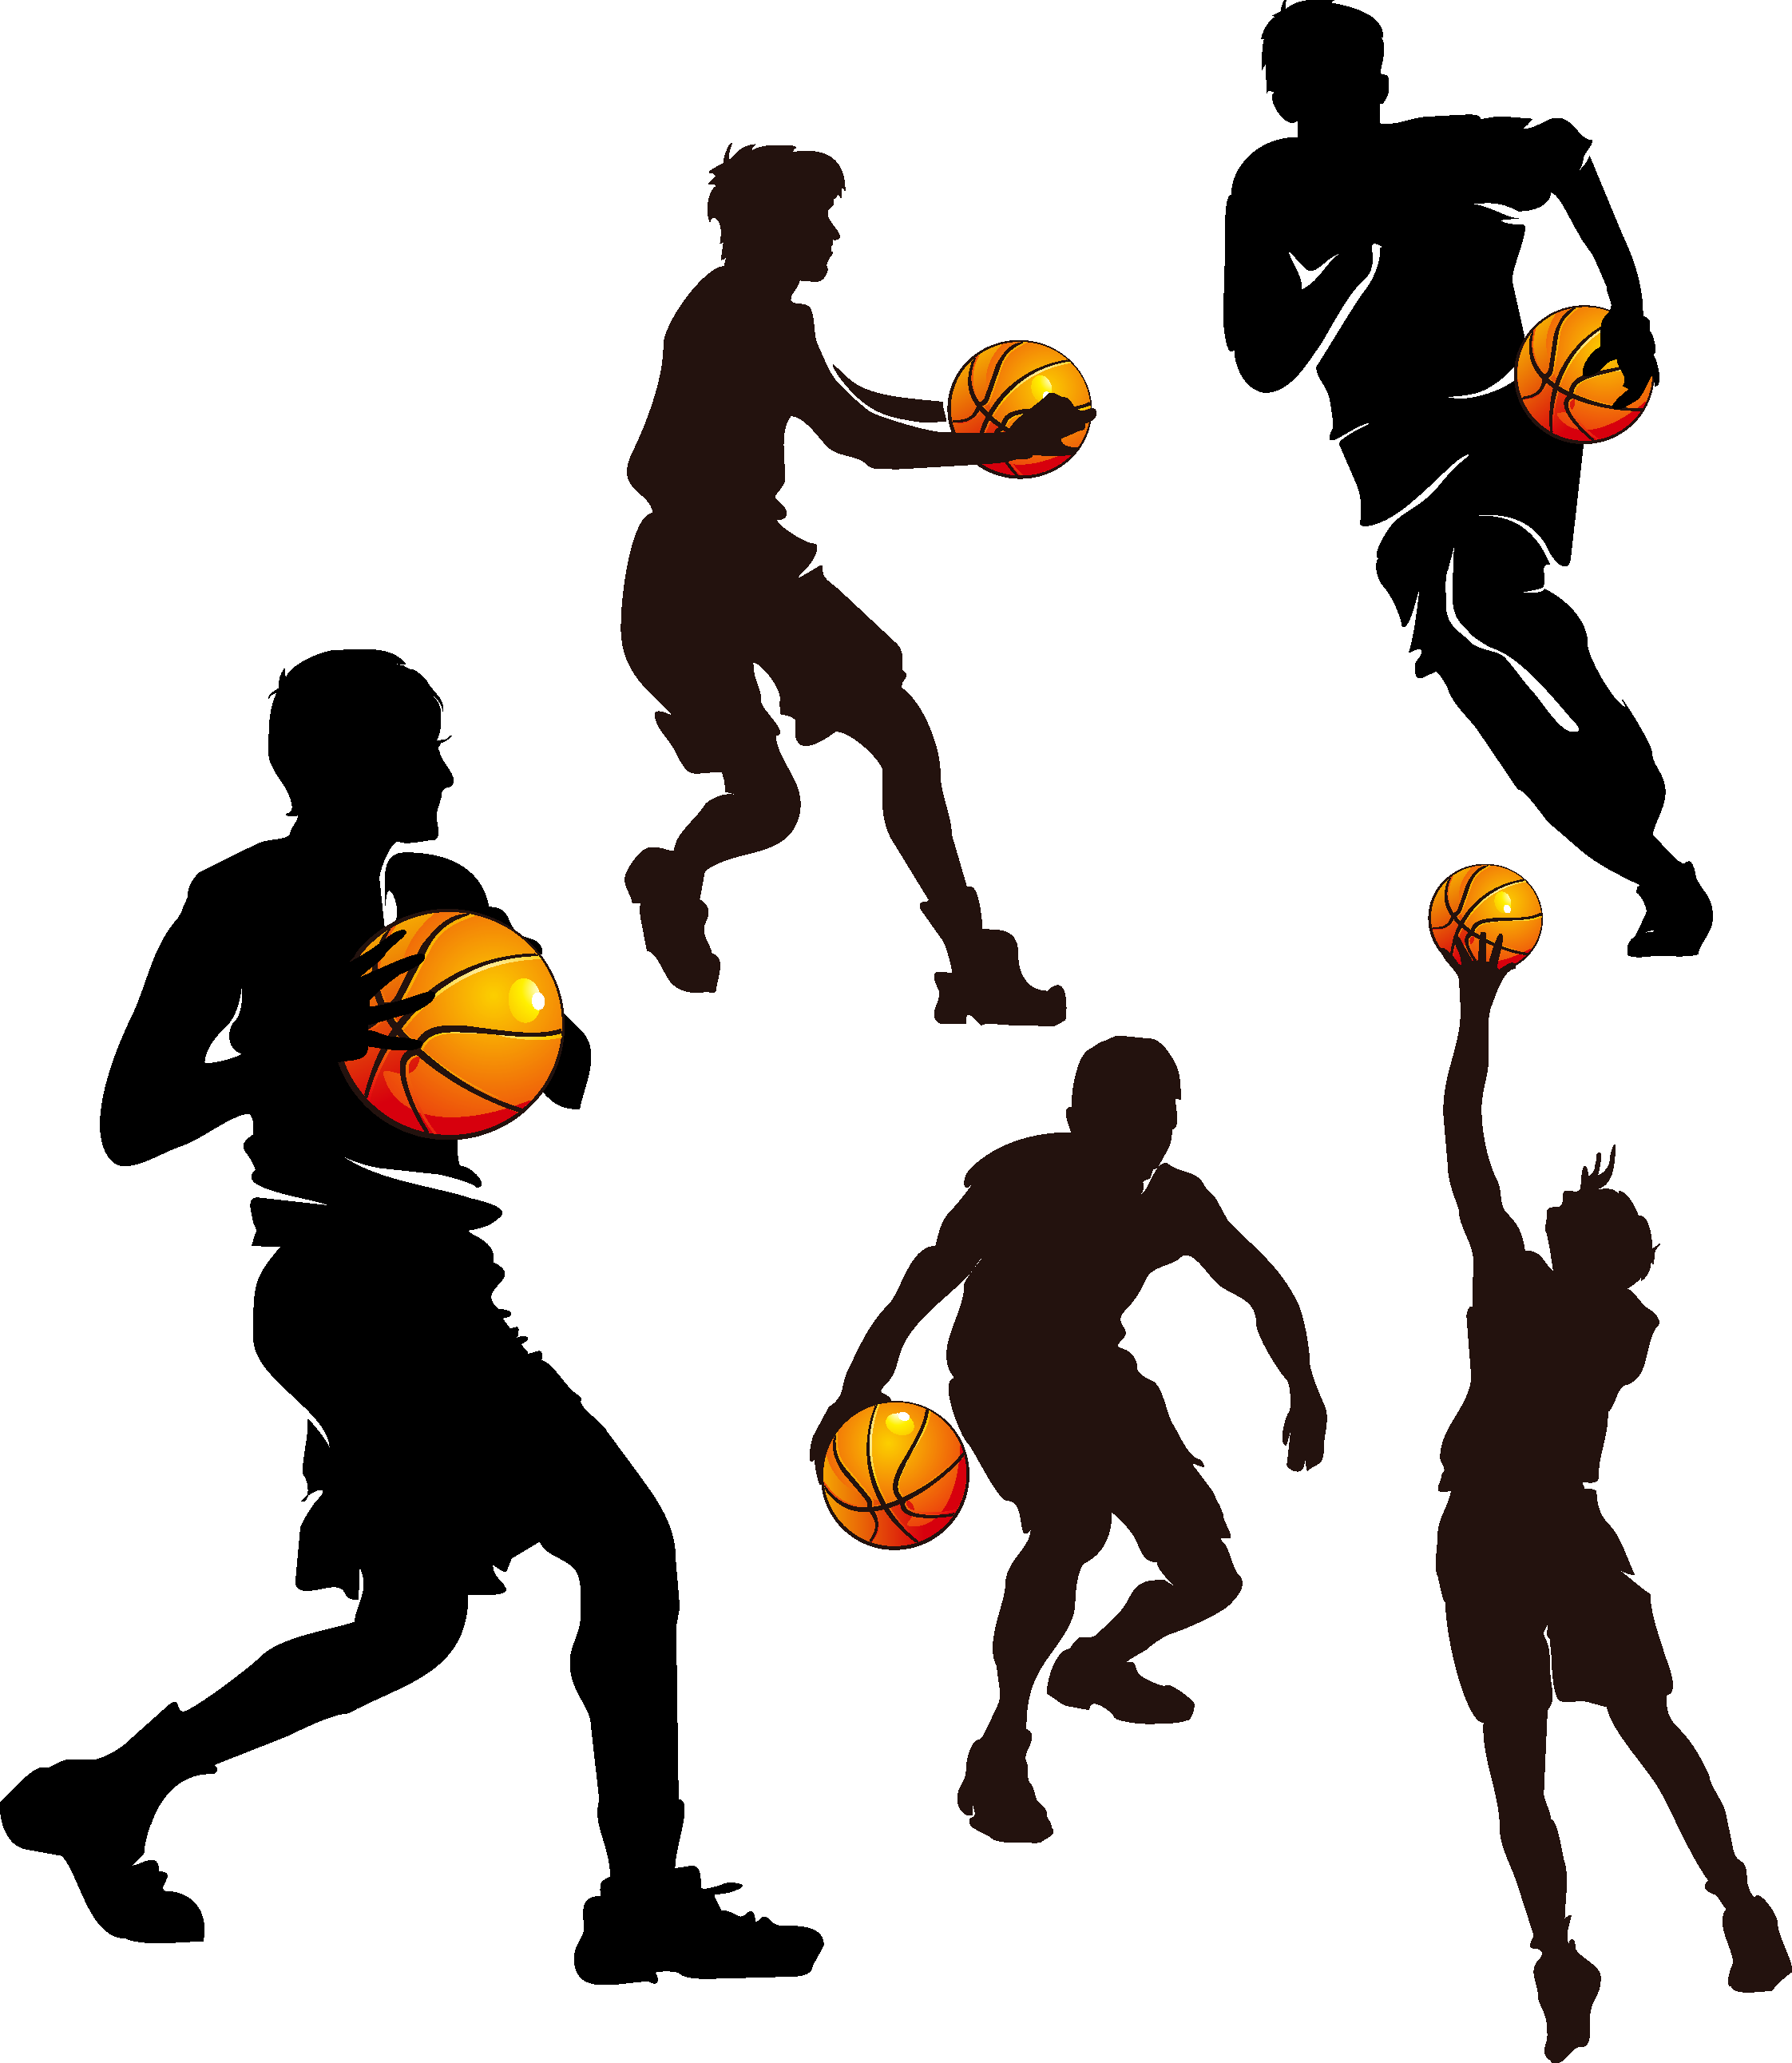 Silhouette team at getdrawings. Hops clipart basketball